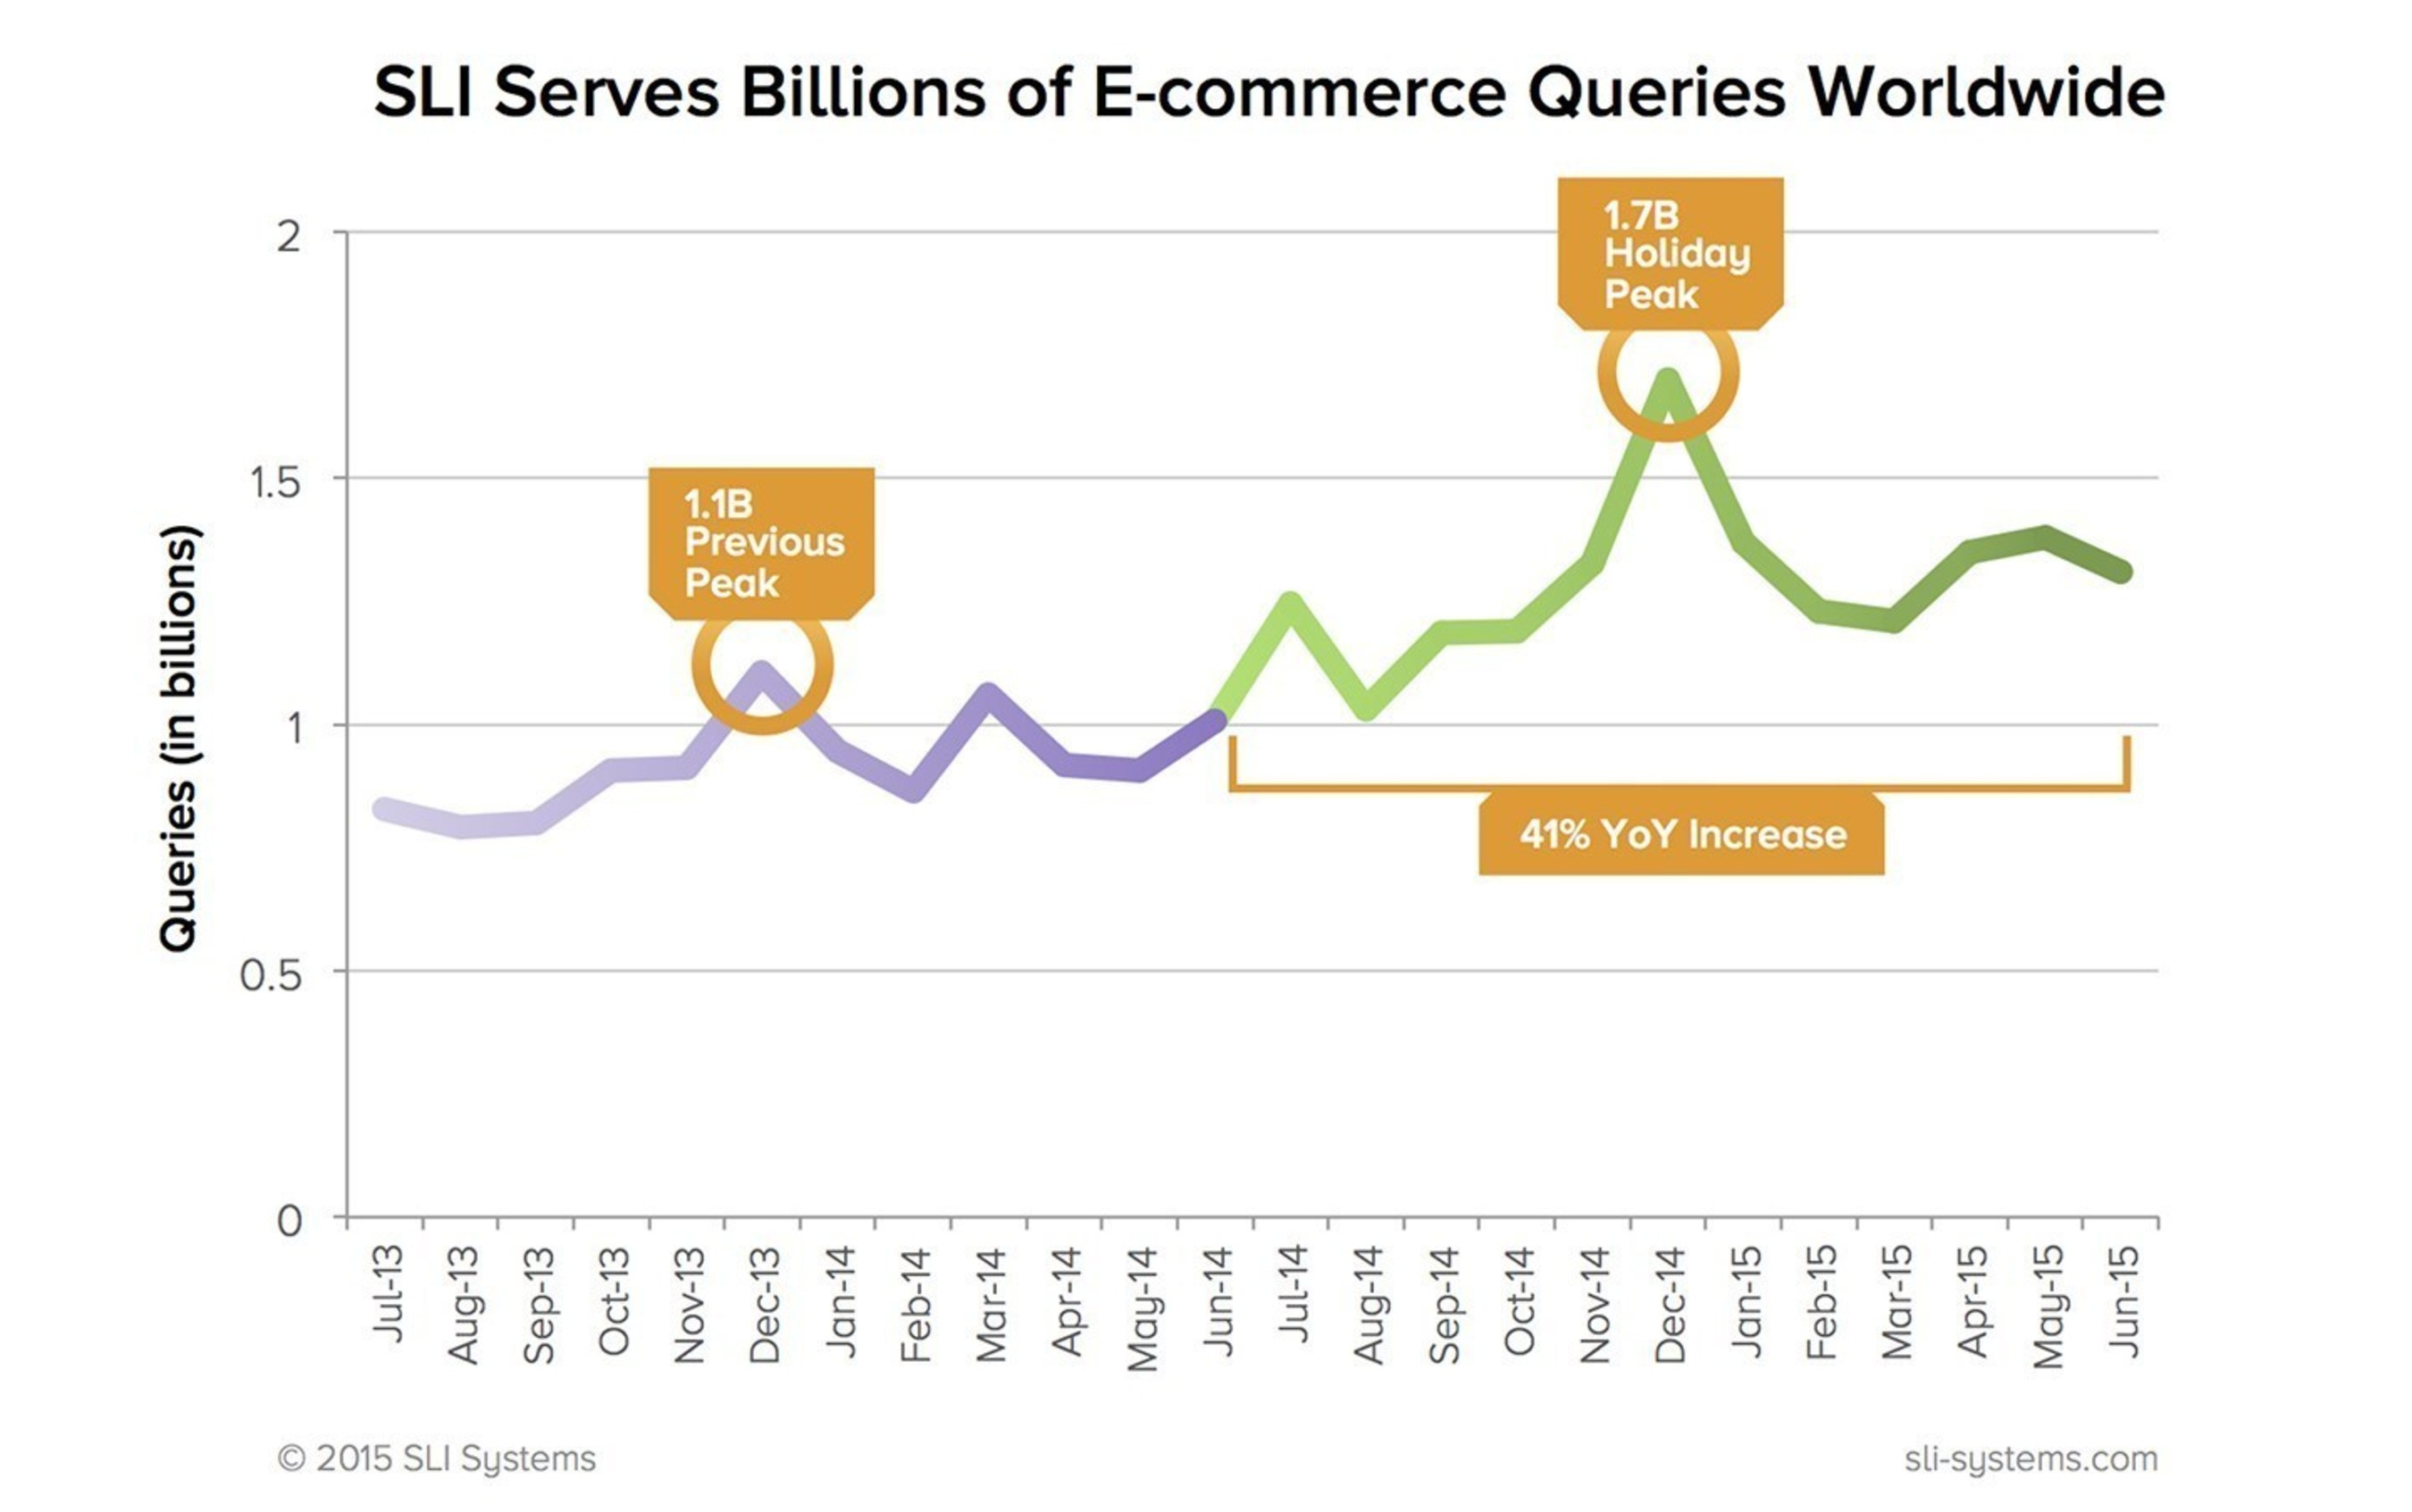 SLI Systems servers handled a record 15.5 billion e-commerce queries between July 1, 2014 and June 30, 2015. ...